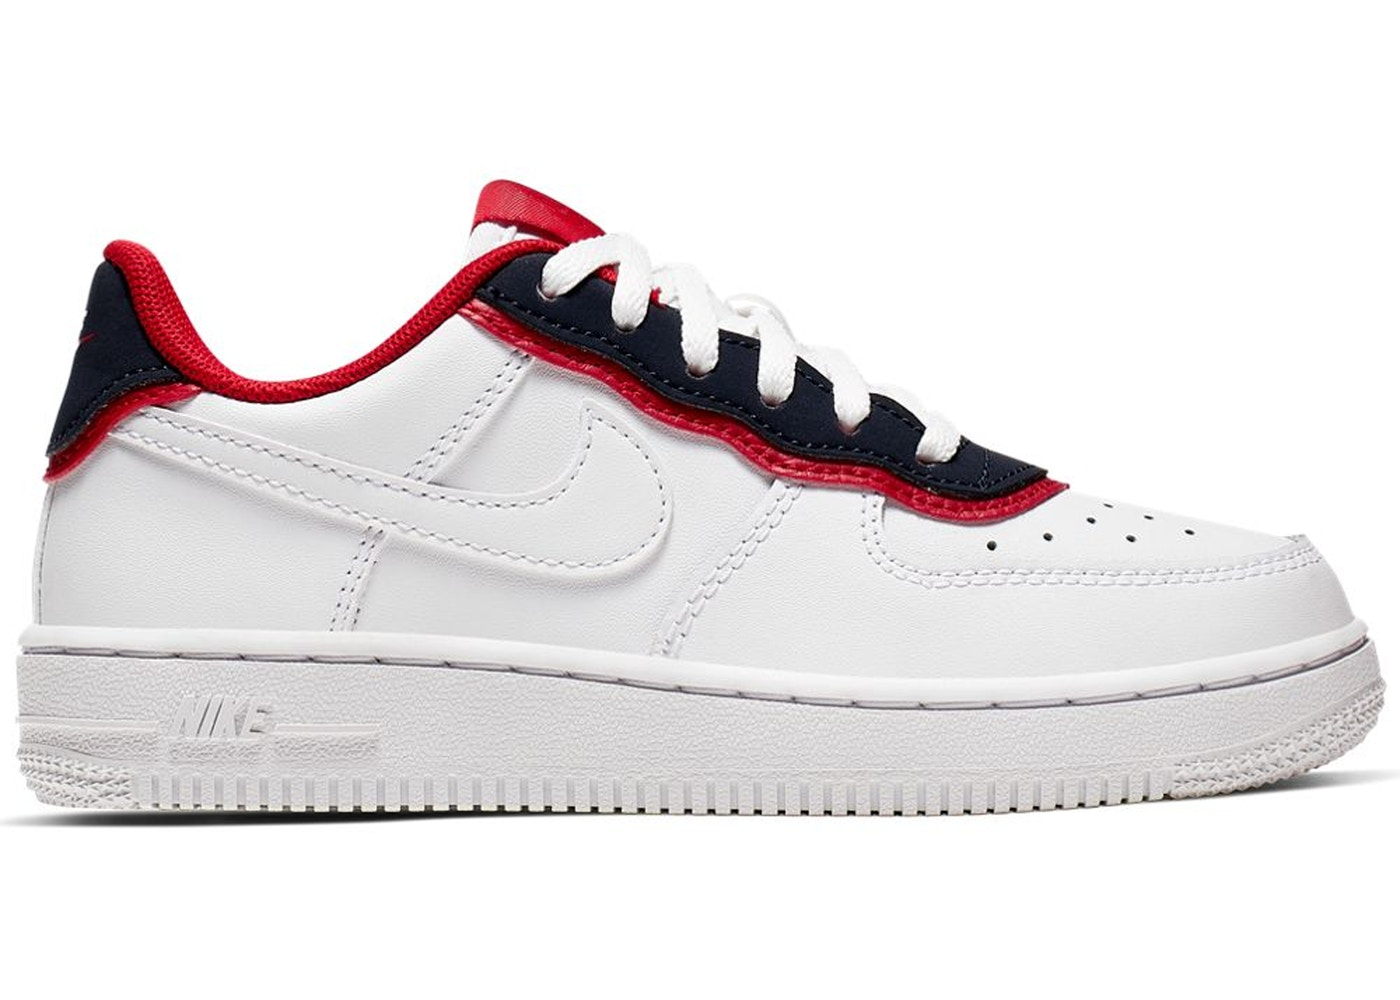 Nike Air Force 1 Low Double Layer White Obsidian Red (PS) - BV1085-101